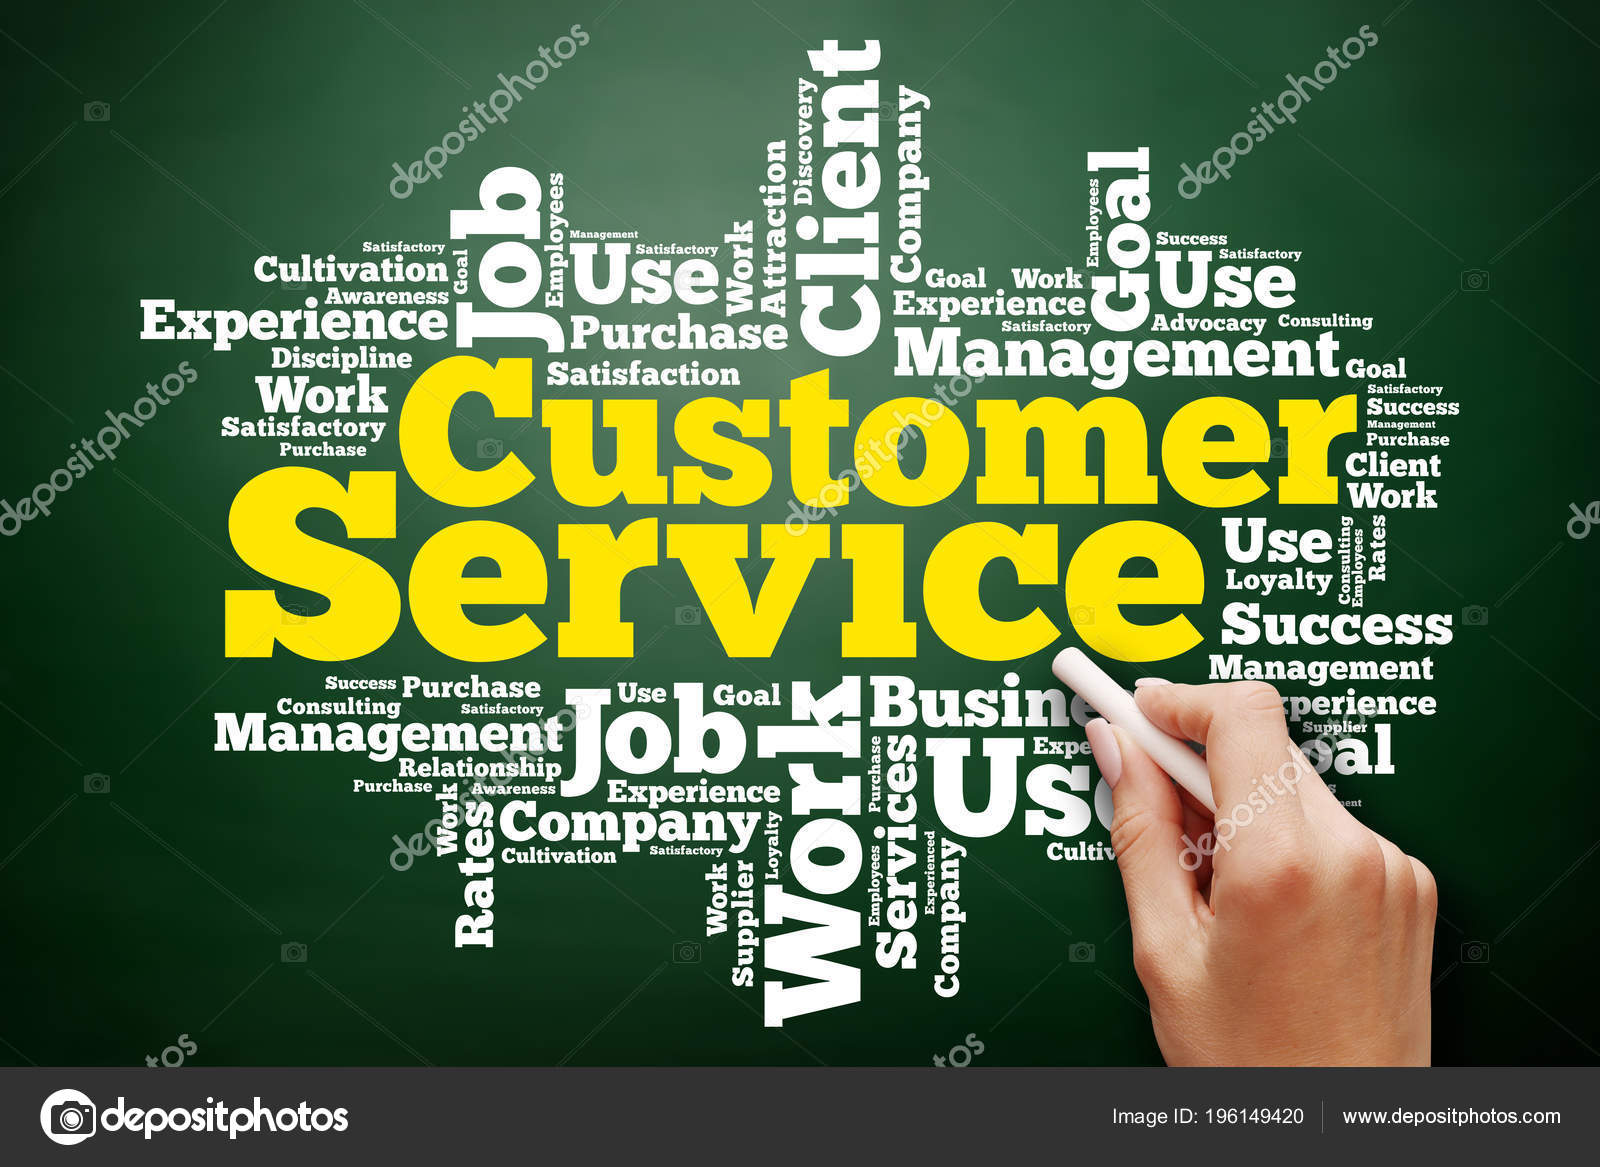 churn management towards customer satisfaction a Churn management is the art of identifying the valuable customers, who are likely this customer tendency to switch is referred to as churn the importance of churn management the paradigm has moved towards customer retention the current scenario full of challenges for every telecom.